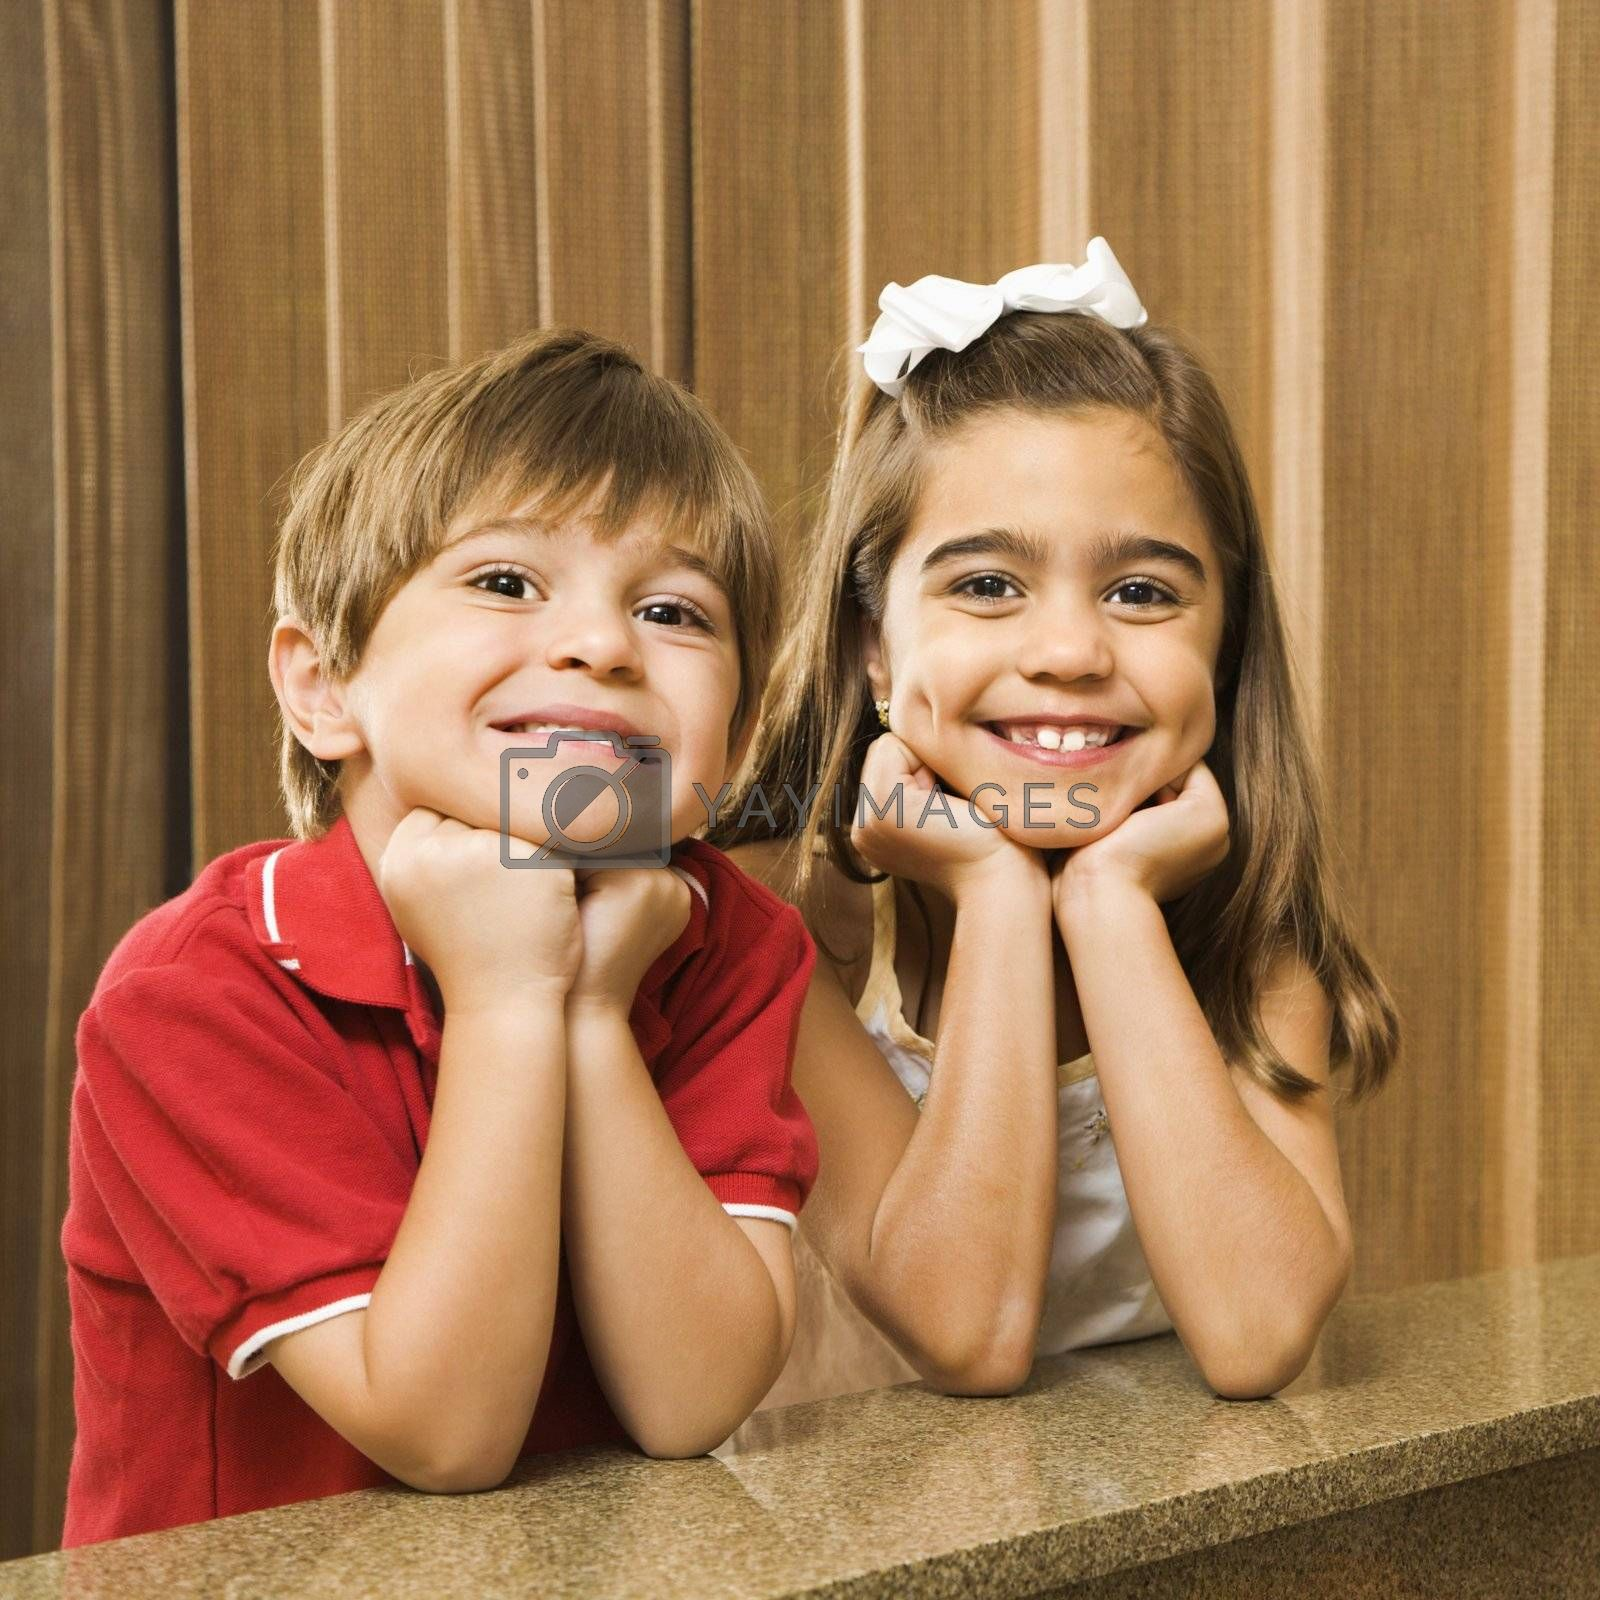 Hispanic children with their head on hands smiling at viewer.